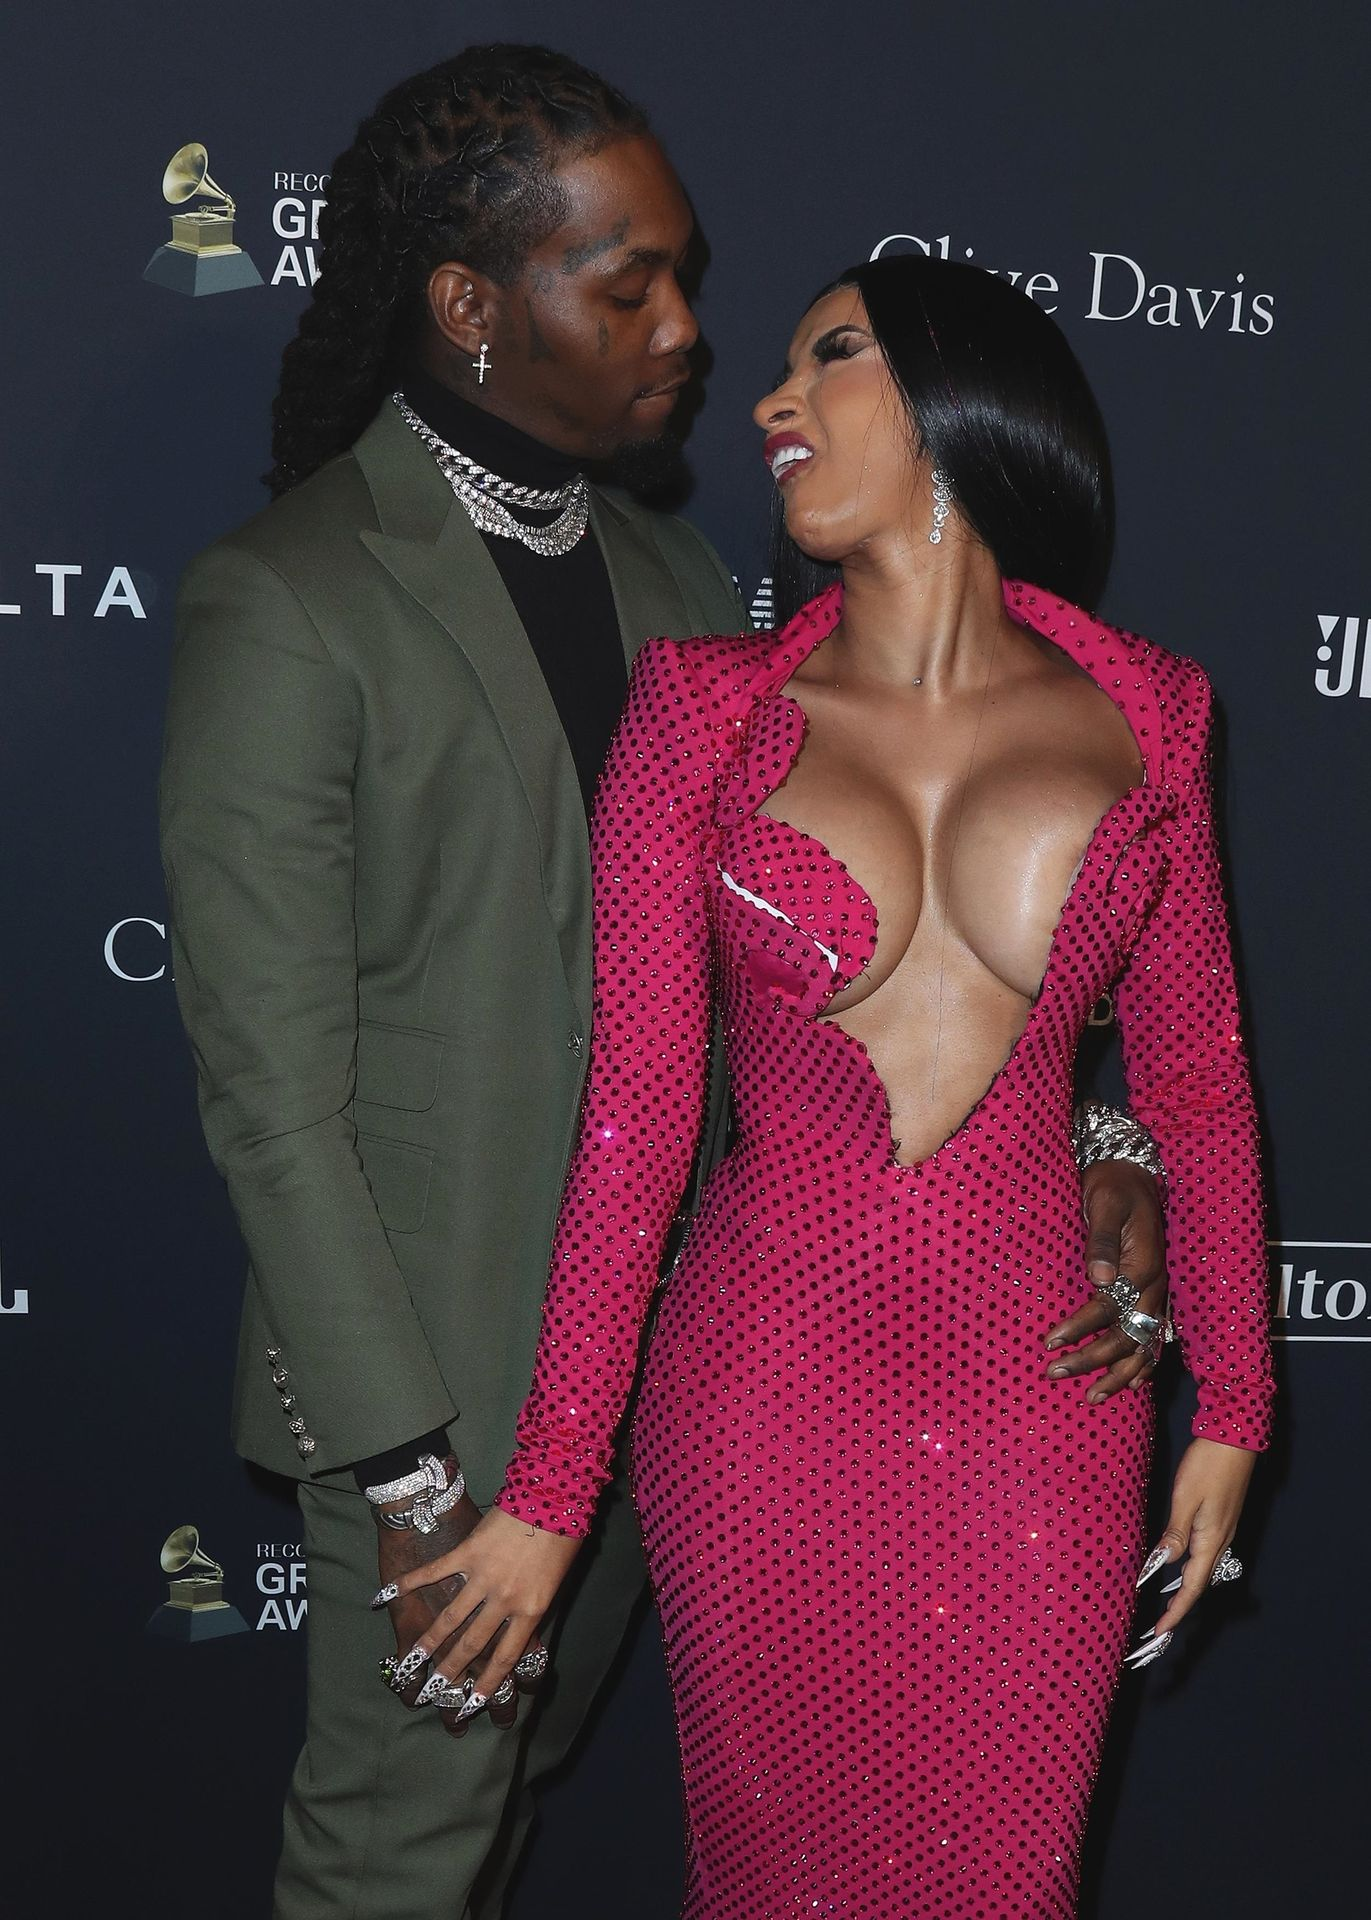 Offset Covers Cardi B's Boobs To Avoid Wardrobe Malfunction At Clive Davis Pre Grammy Party 0043